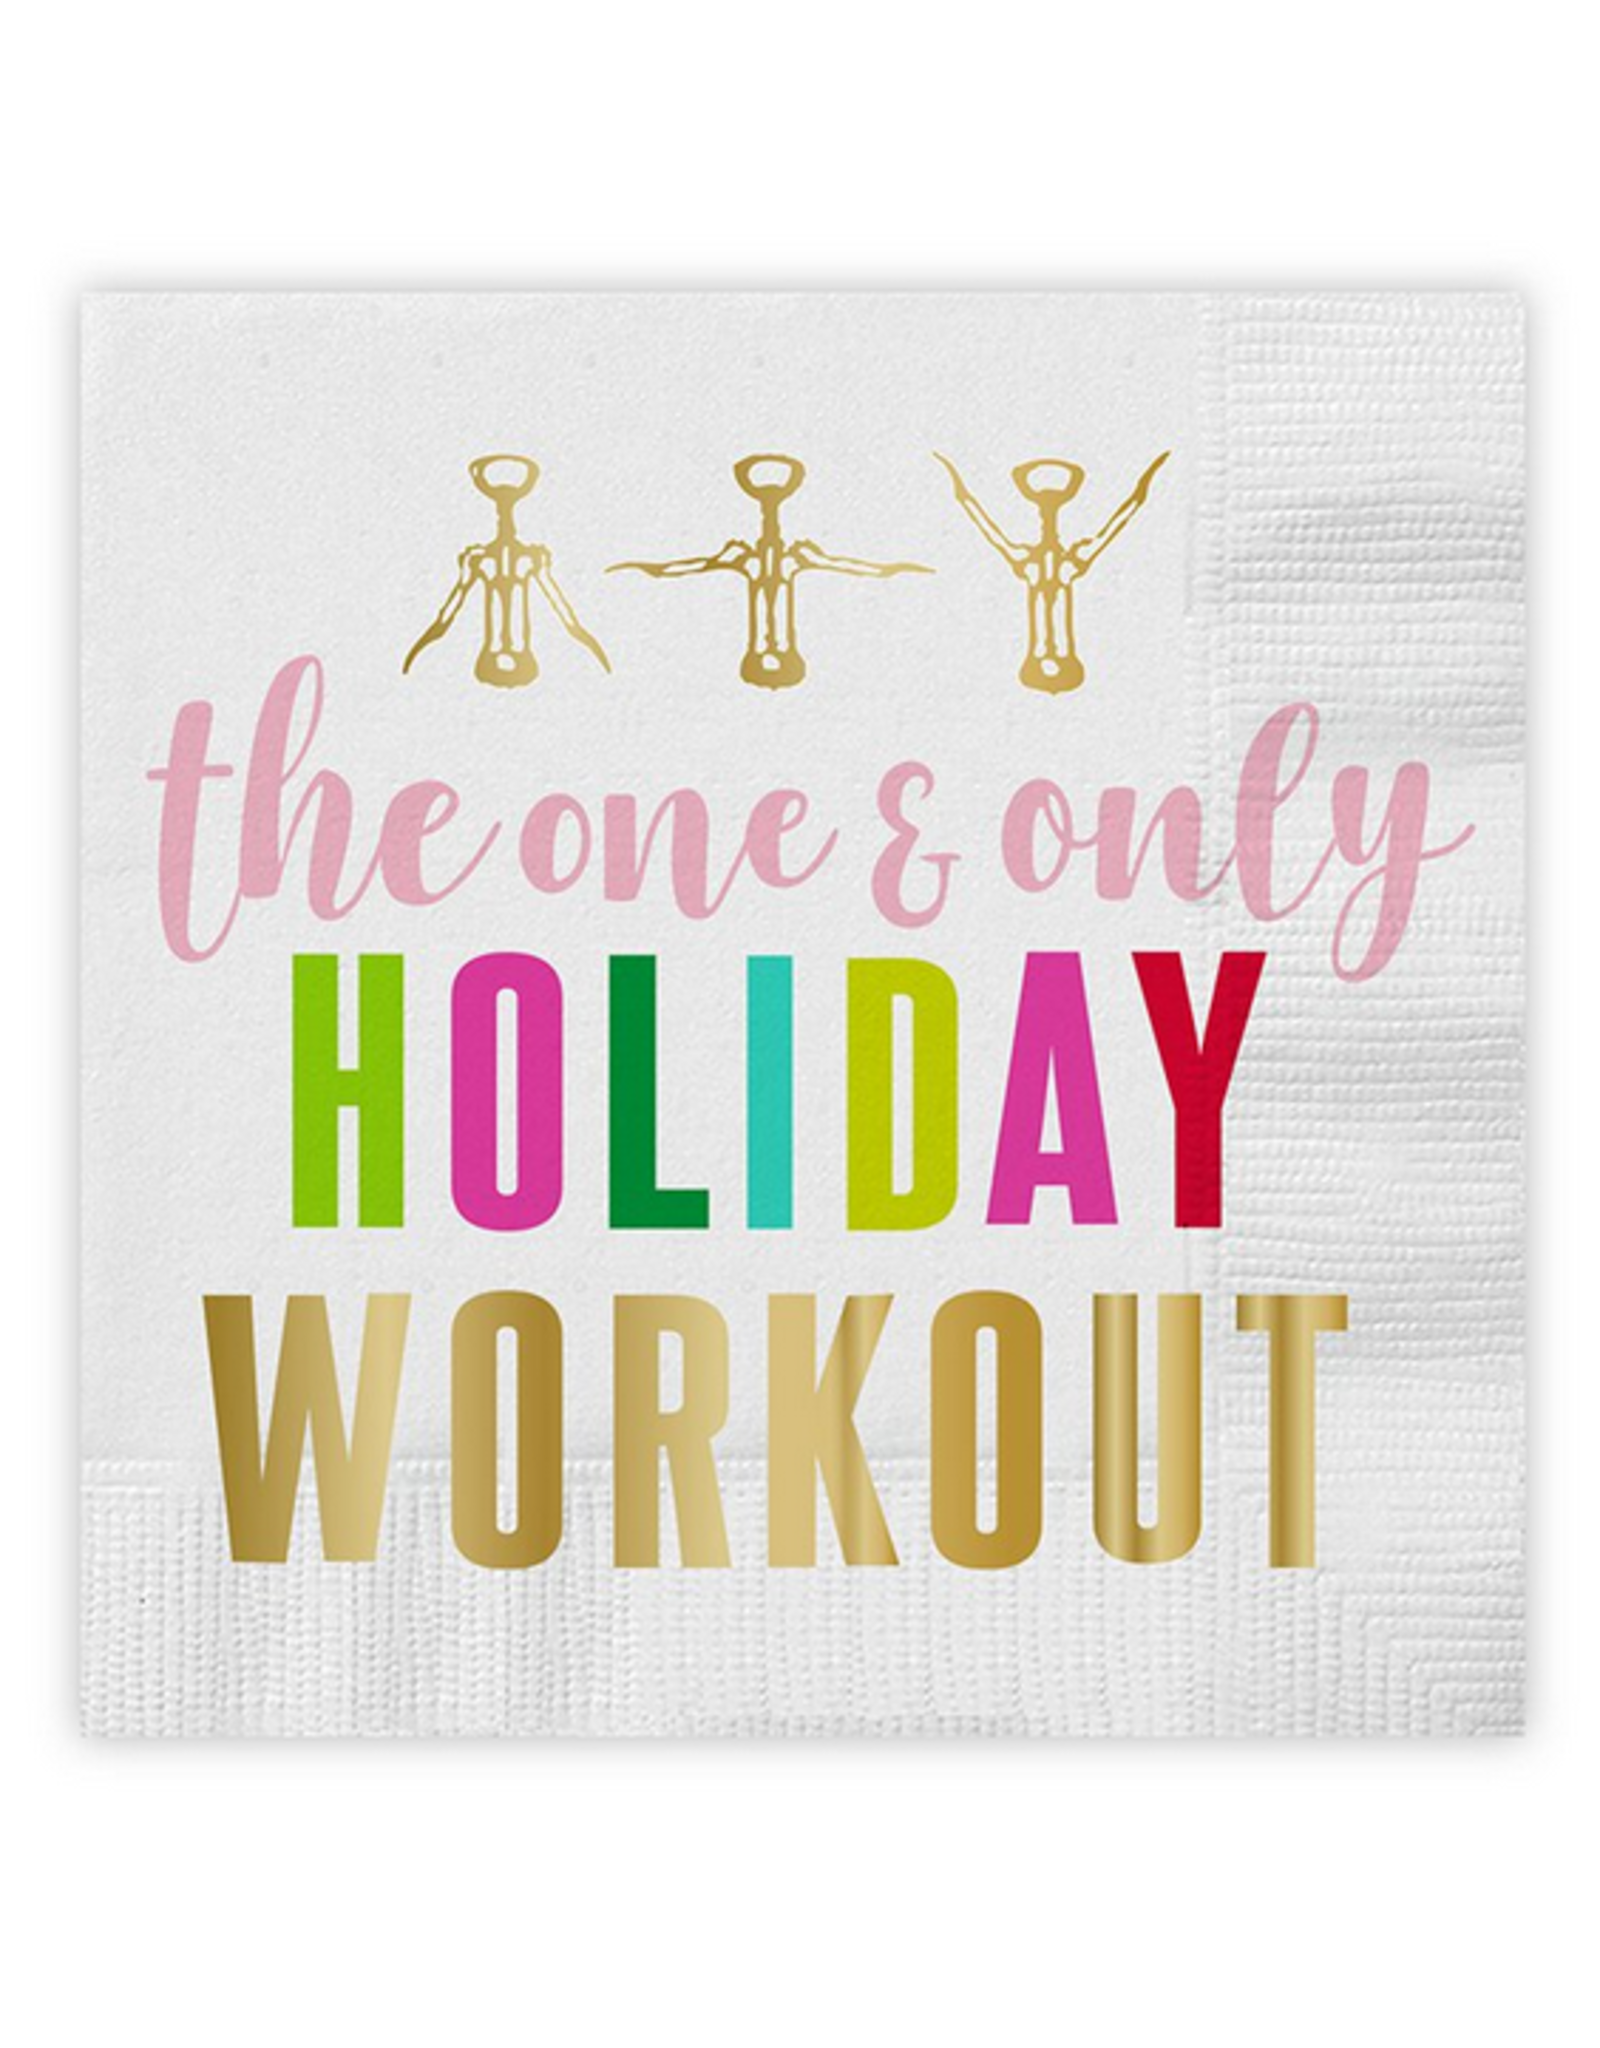 Slant Collections Holiday Workout Napkins